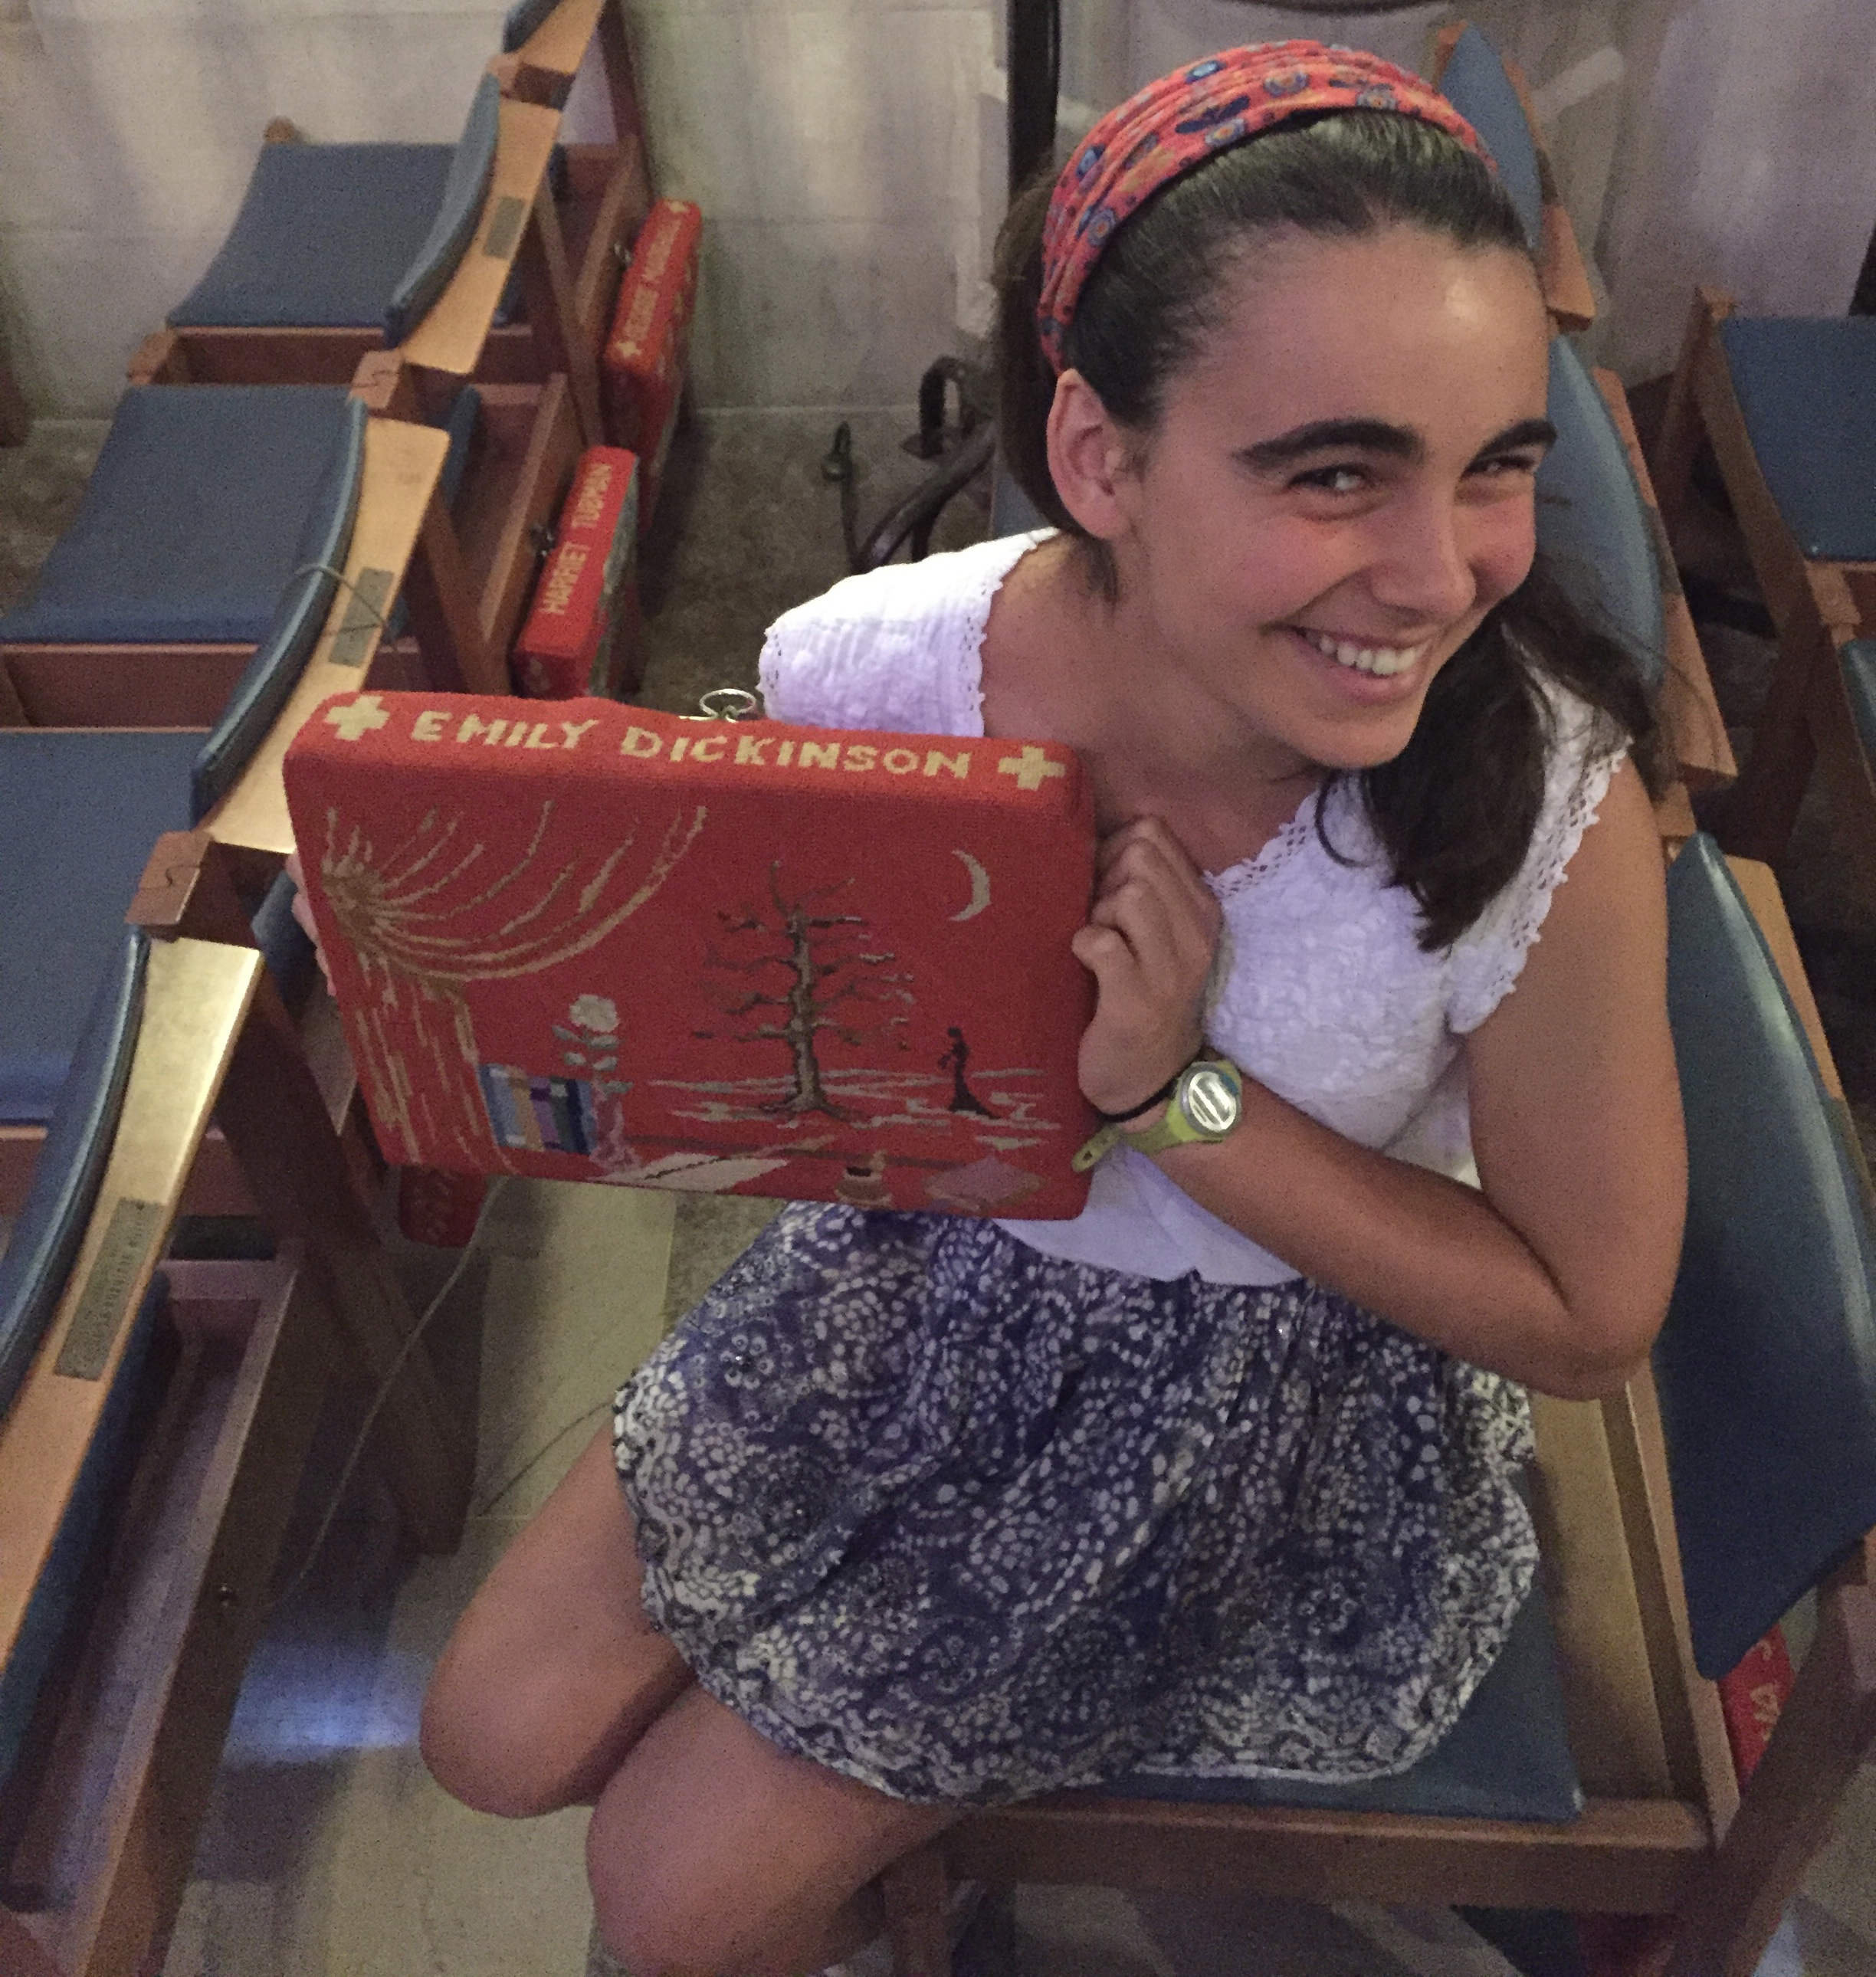 Emily Dickinson cushion at the National Cathedral